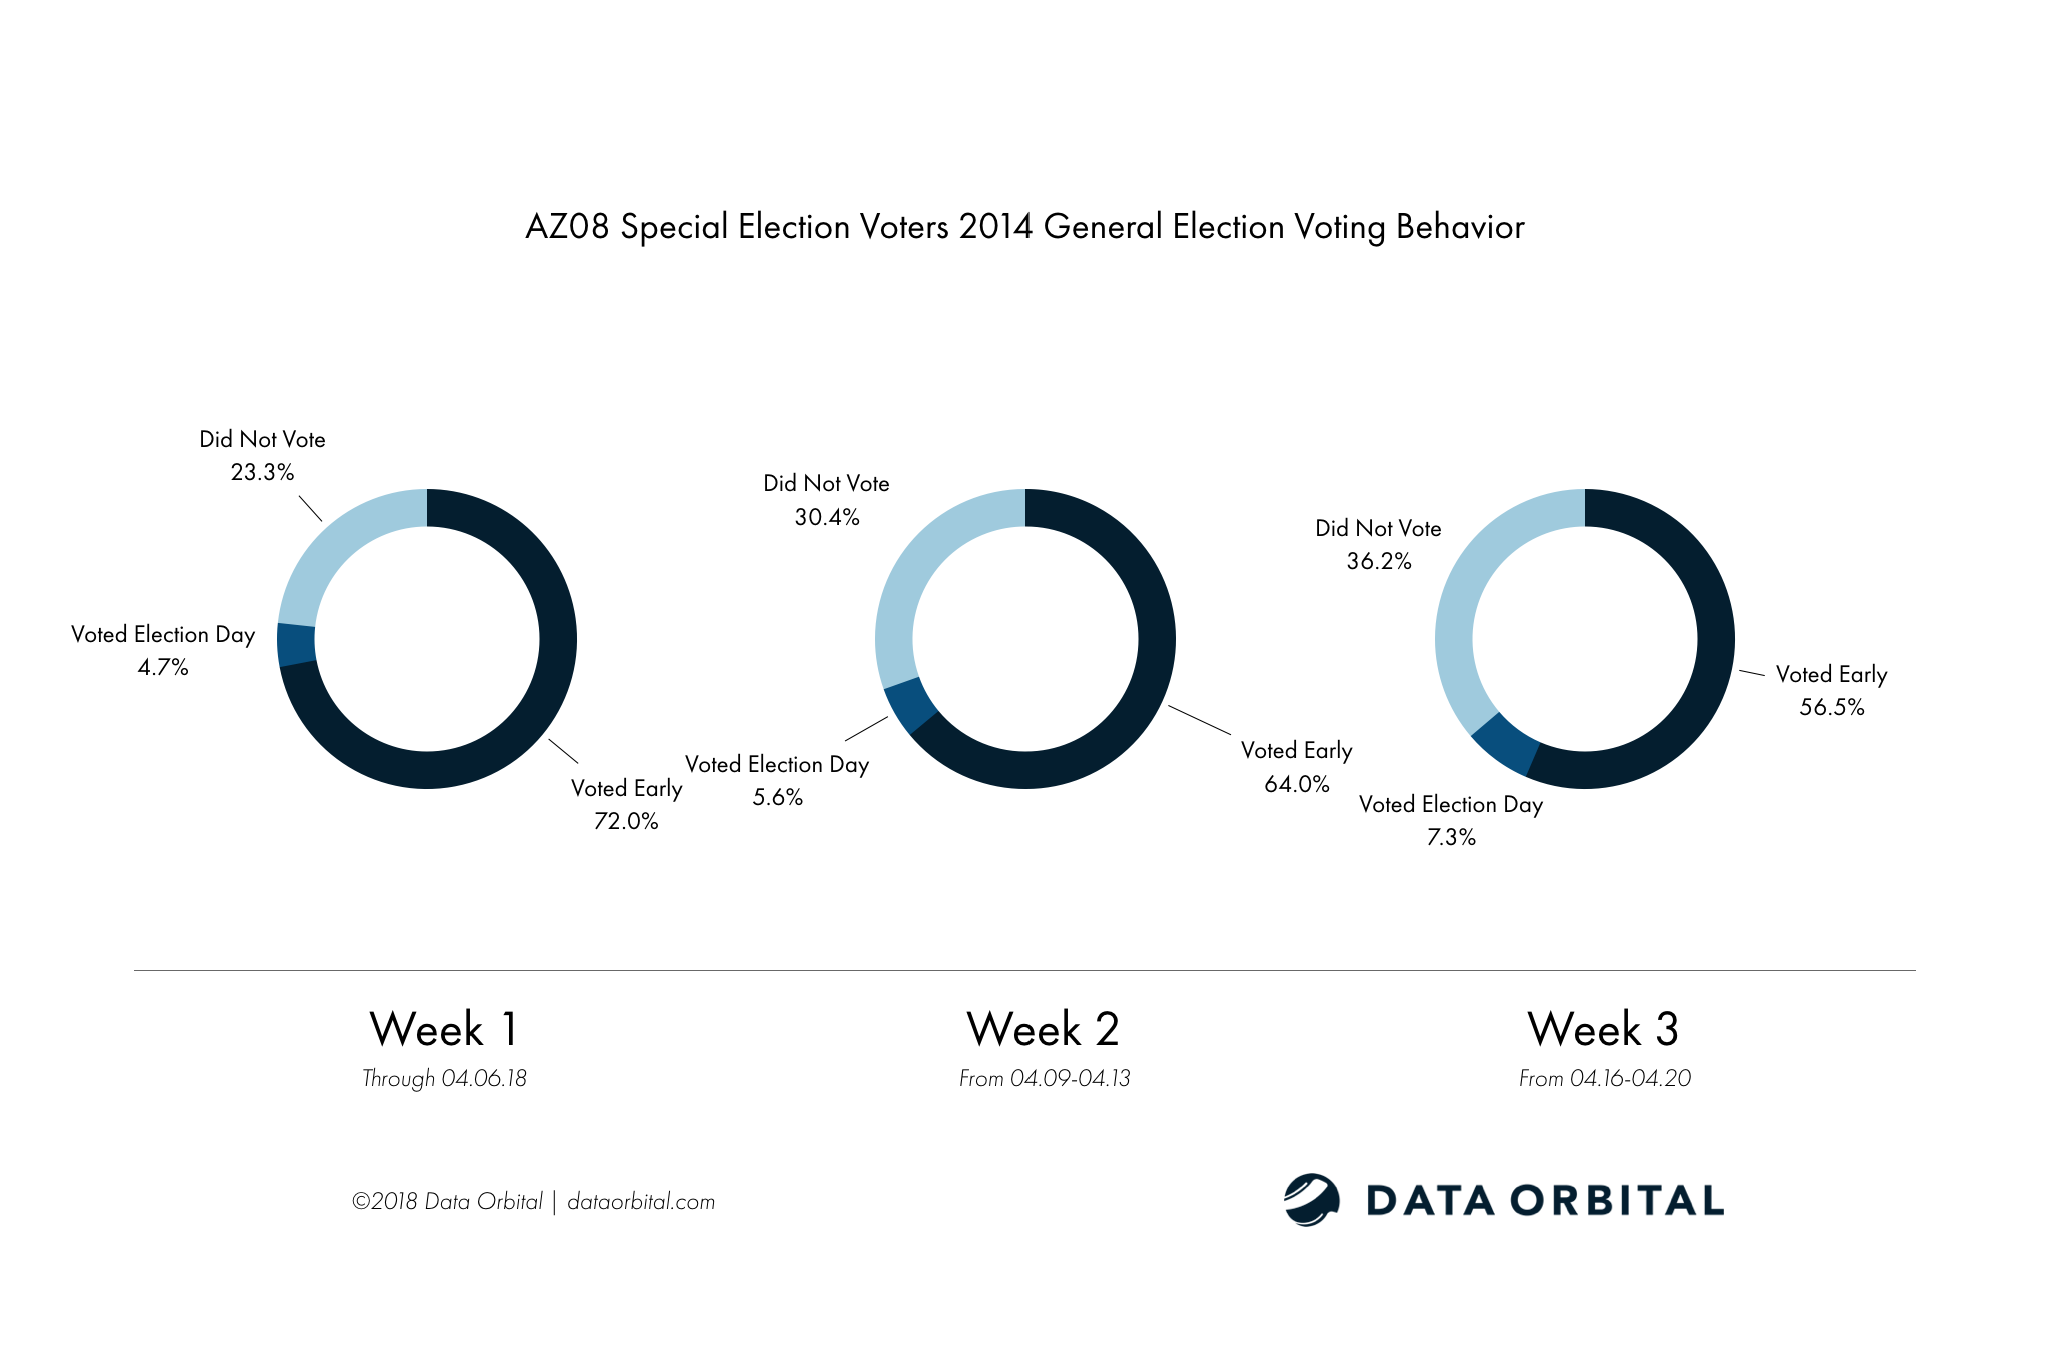 AZ08 Special Election Week 3 Wrap Up Analysis 2014 General Election Voting Behavior